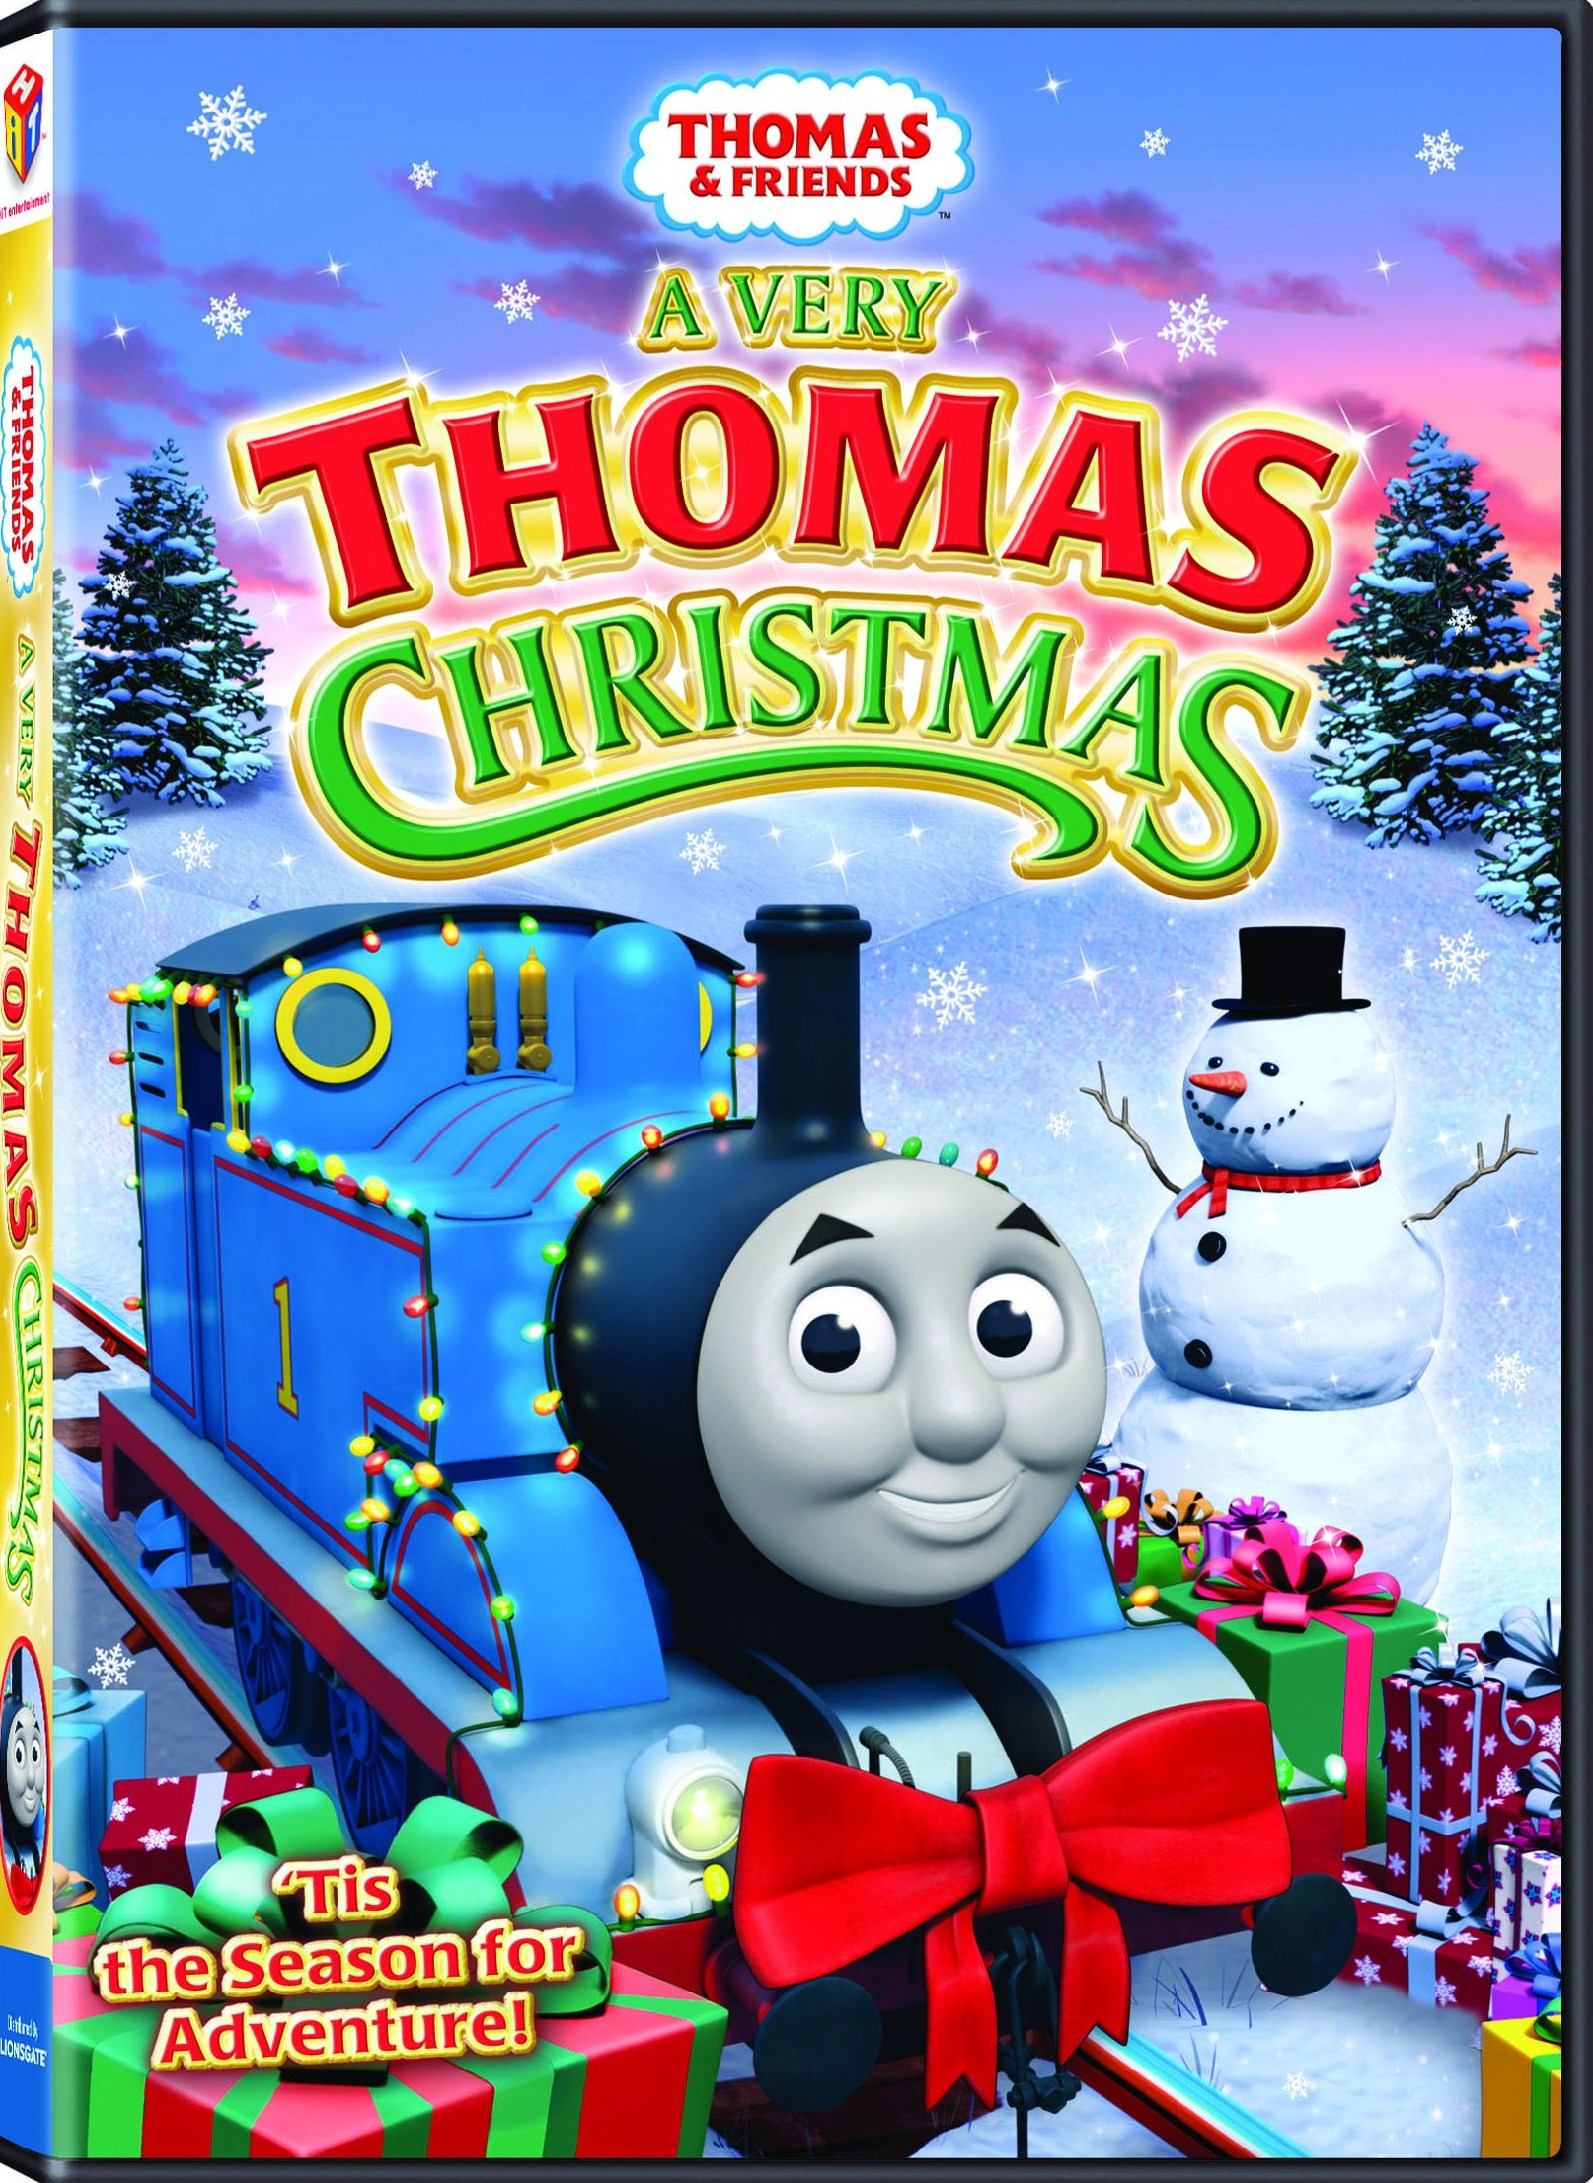 A Very Thomas Christmas/Gallery